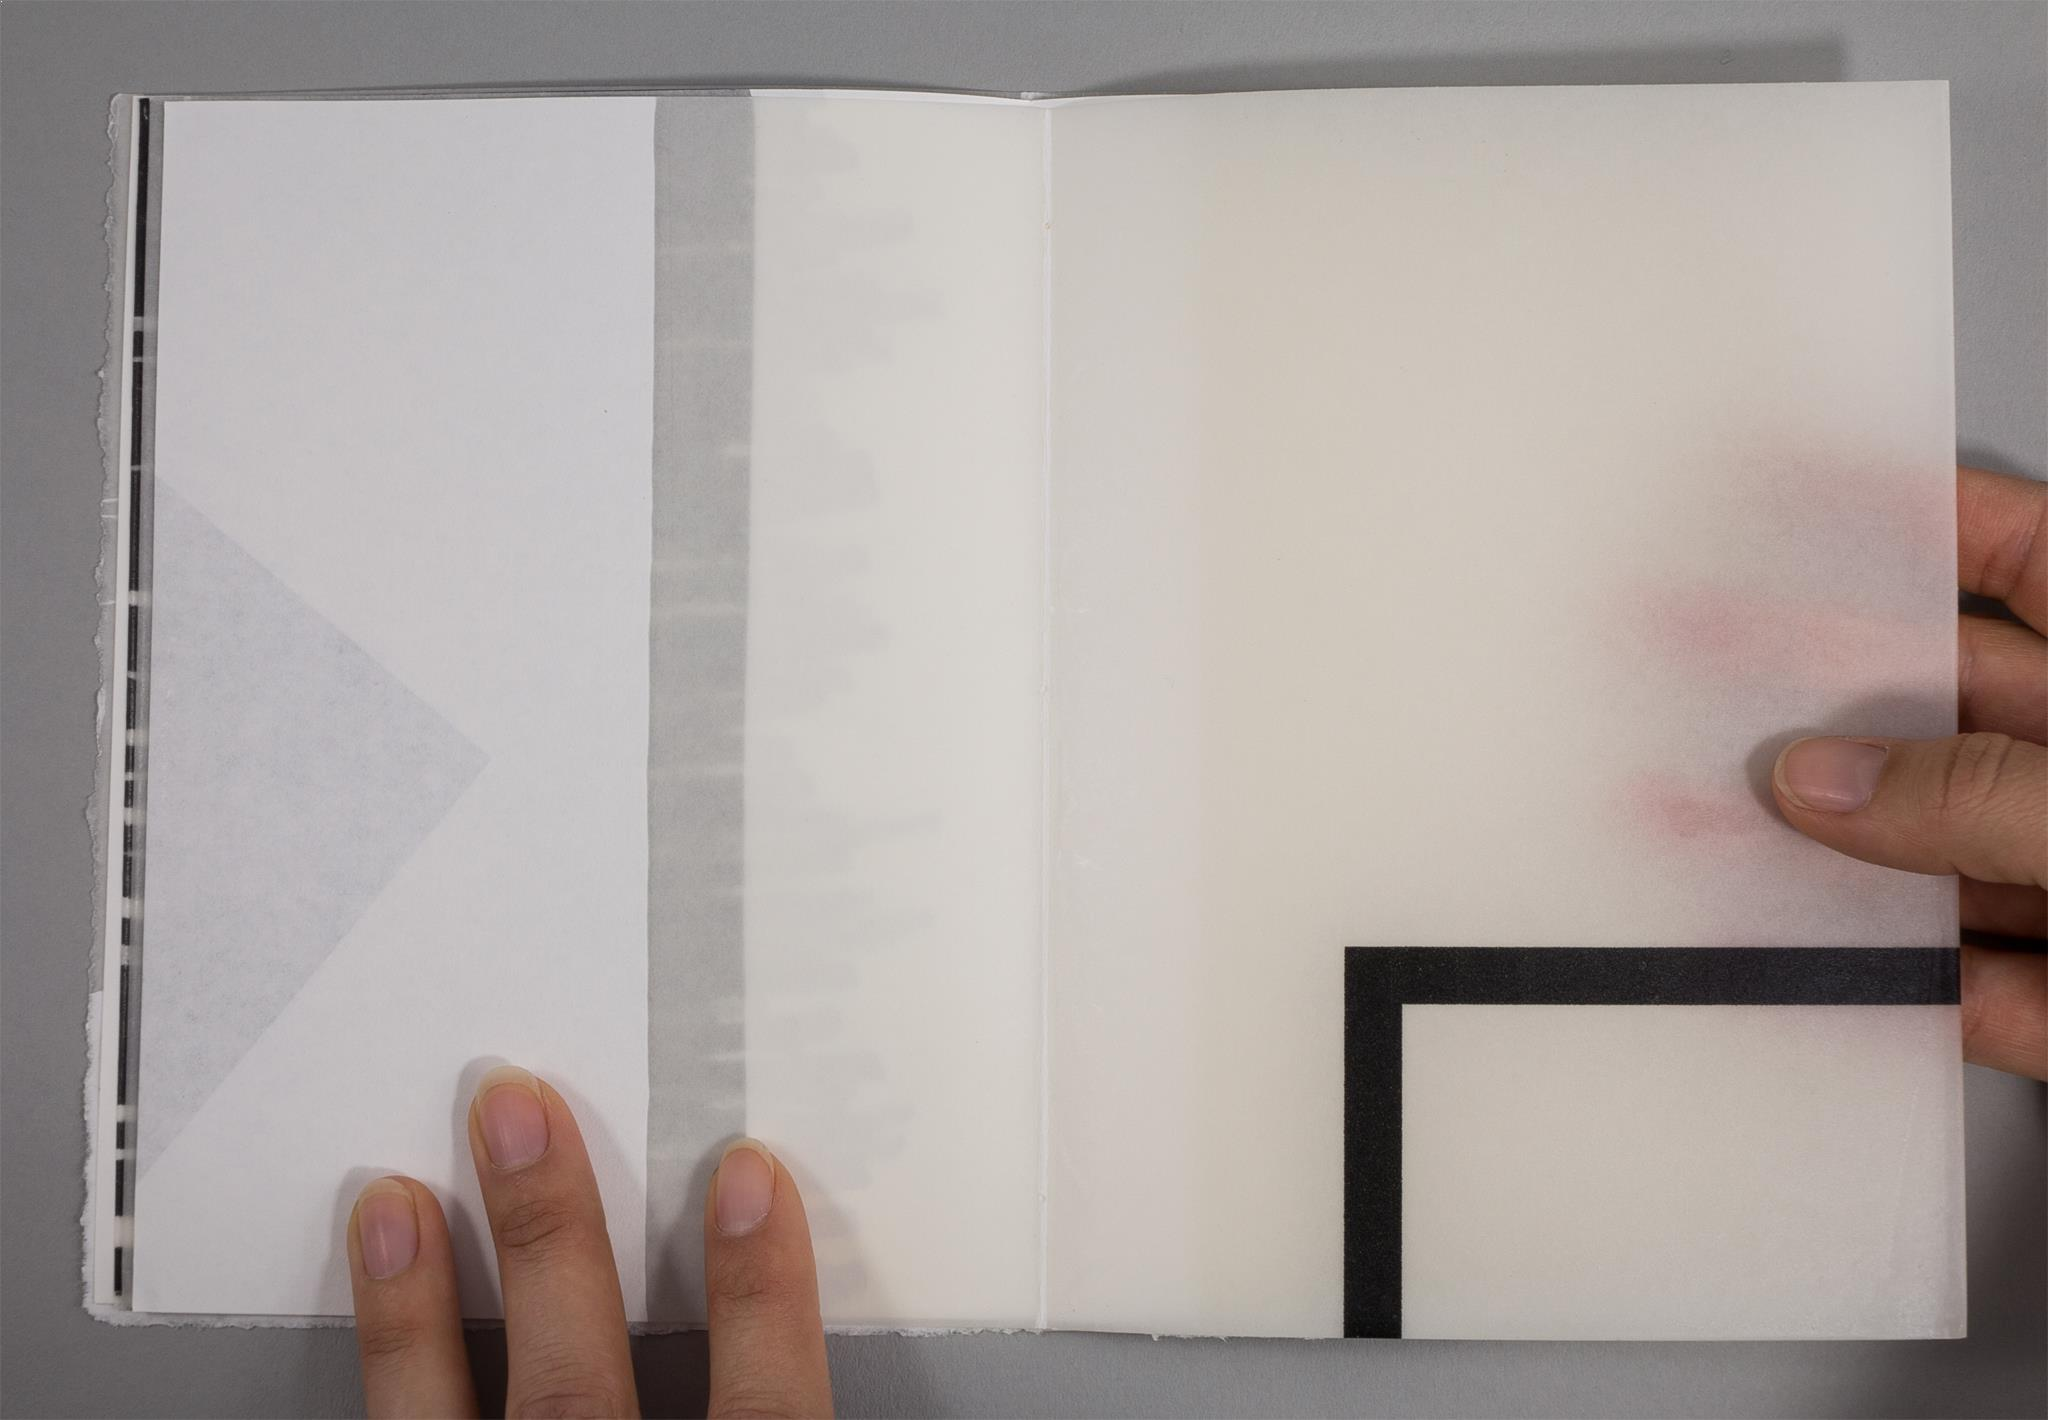 Artists book by Karen Bleitz created from paper, pencil and hot wax. With powerful simplicity this book takes us into the plexus of reading, printing and being.